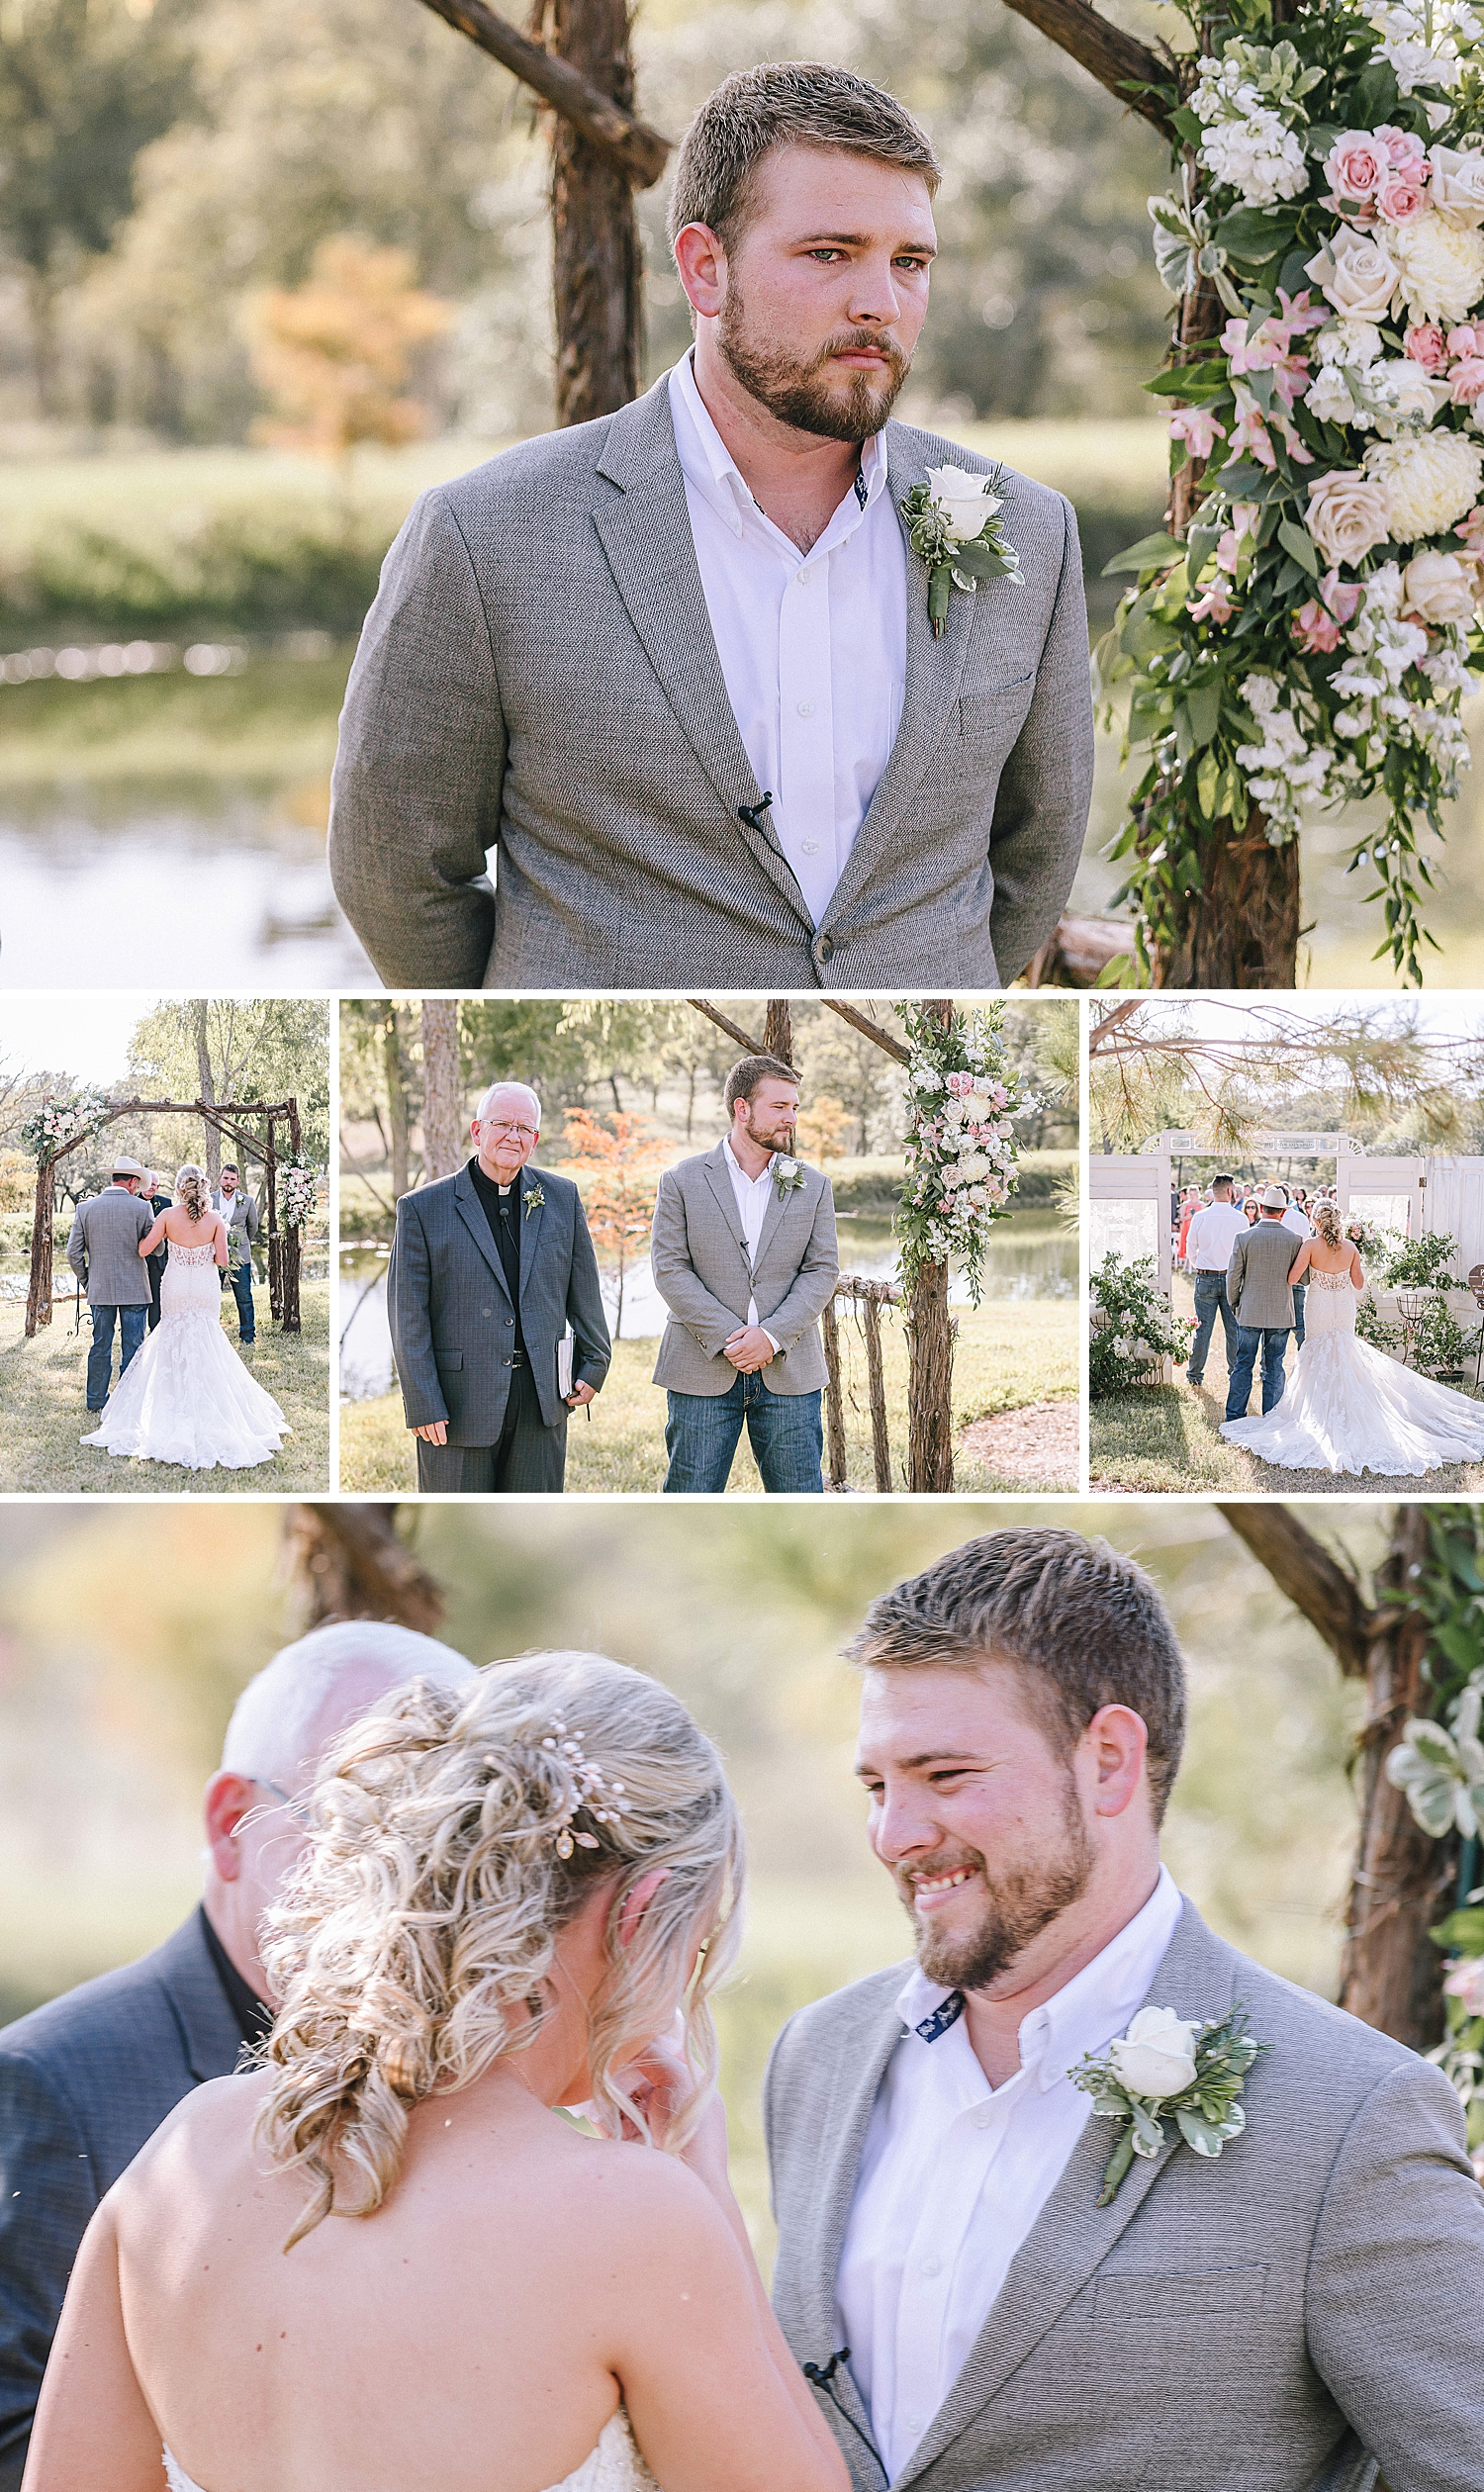 Rackler-Ranch-LaVernia-Texas-Wedding-Carly-Barton-Photography_0072.jpg